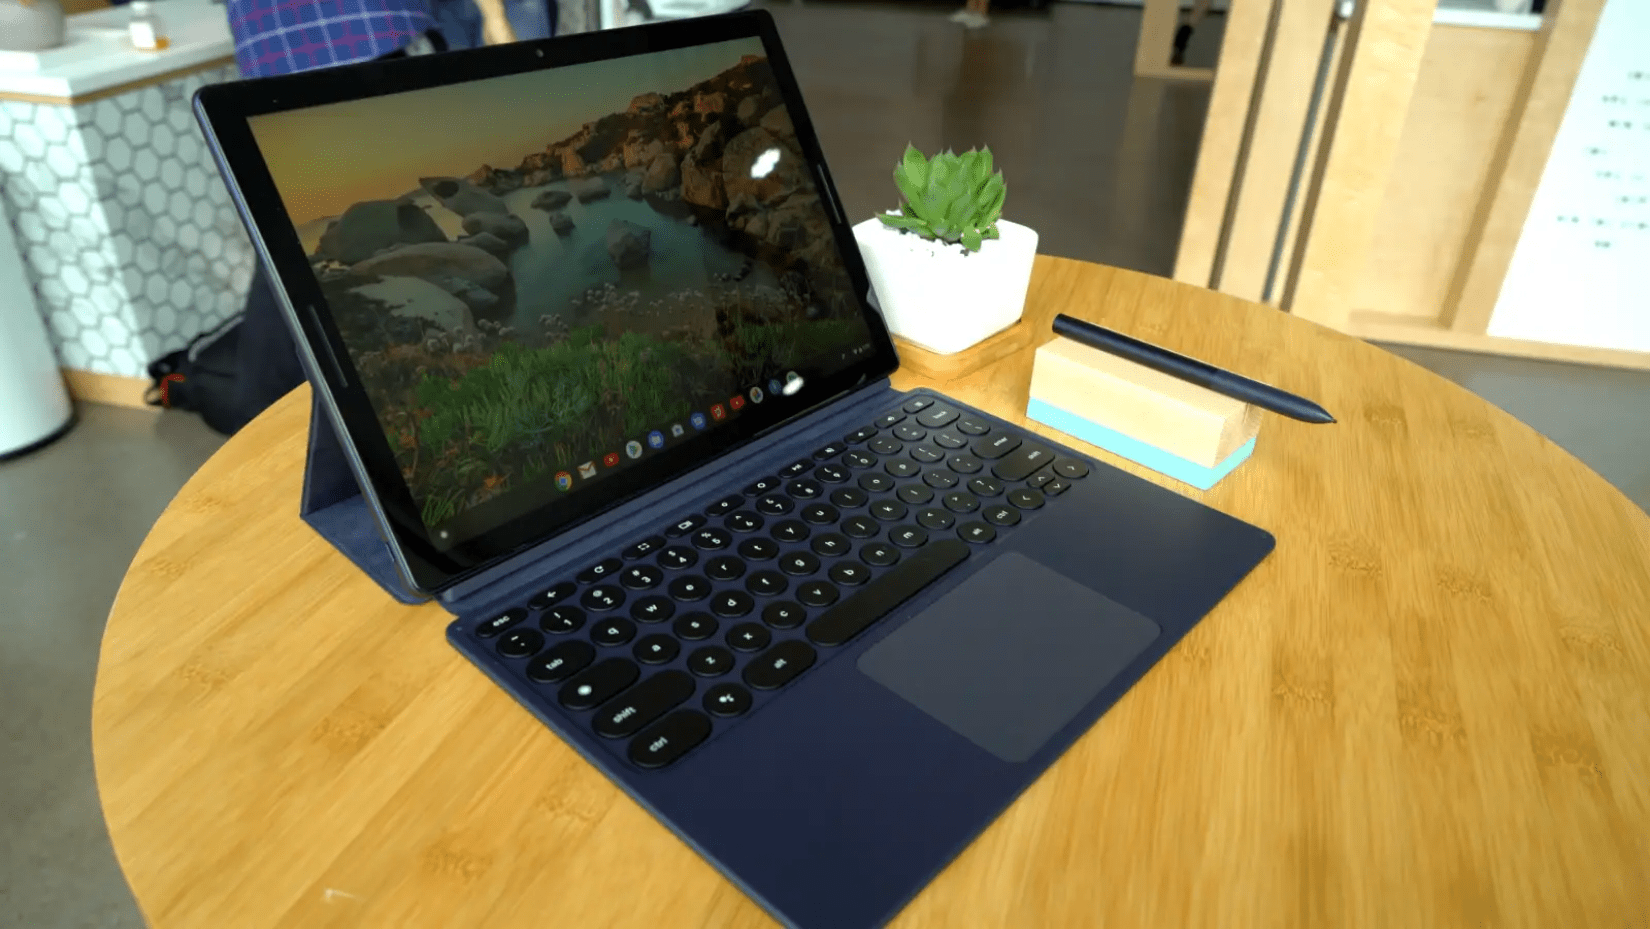 Hands-On With The Pixel Slate: Google's First Chrome OS Tablet